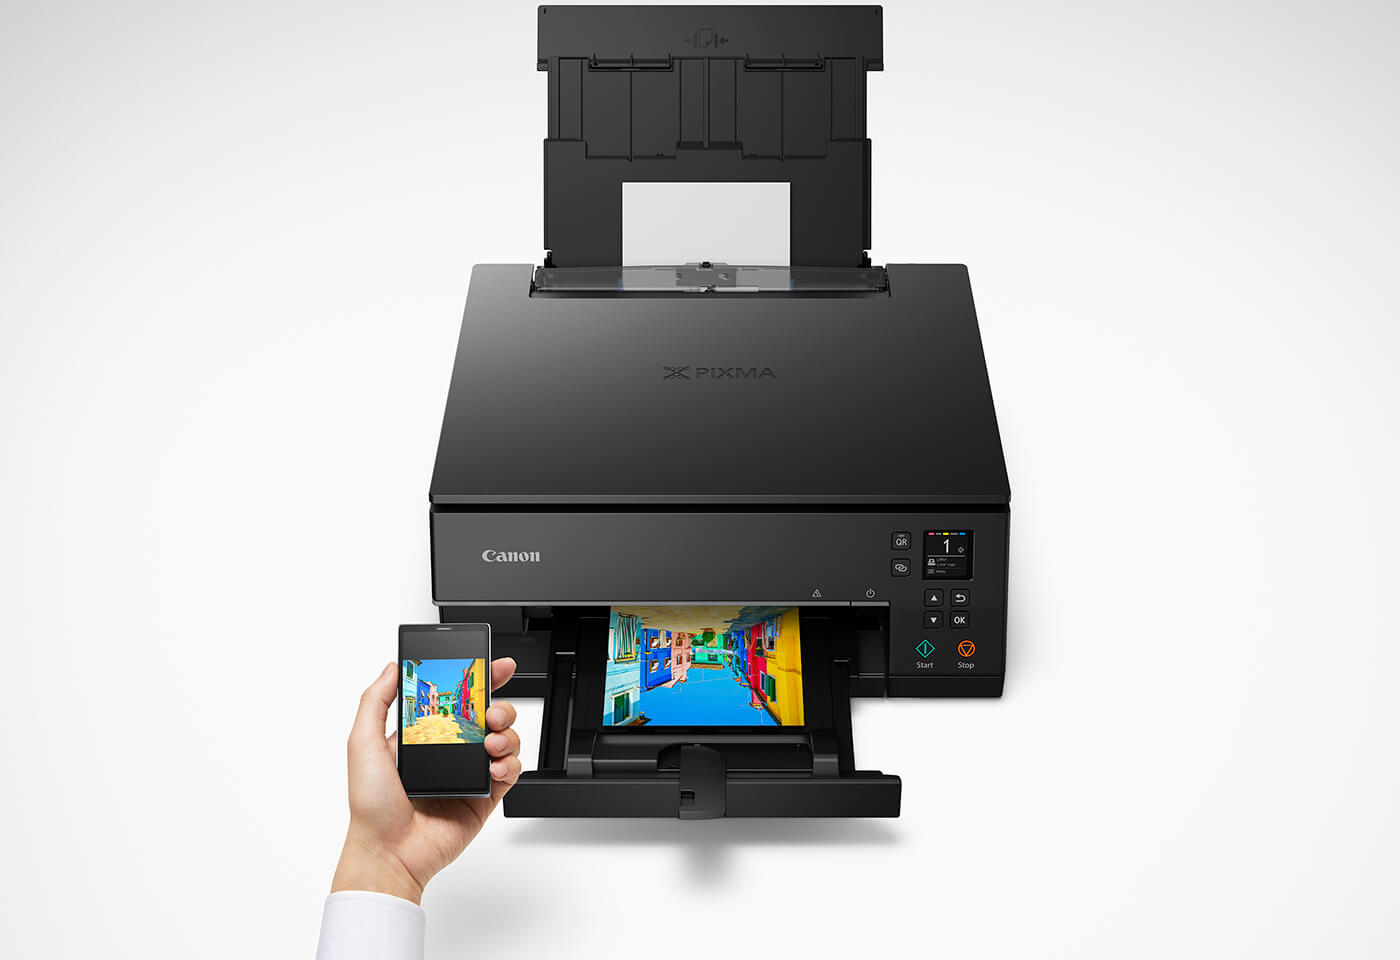 Print wirelessly with Canon Print App